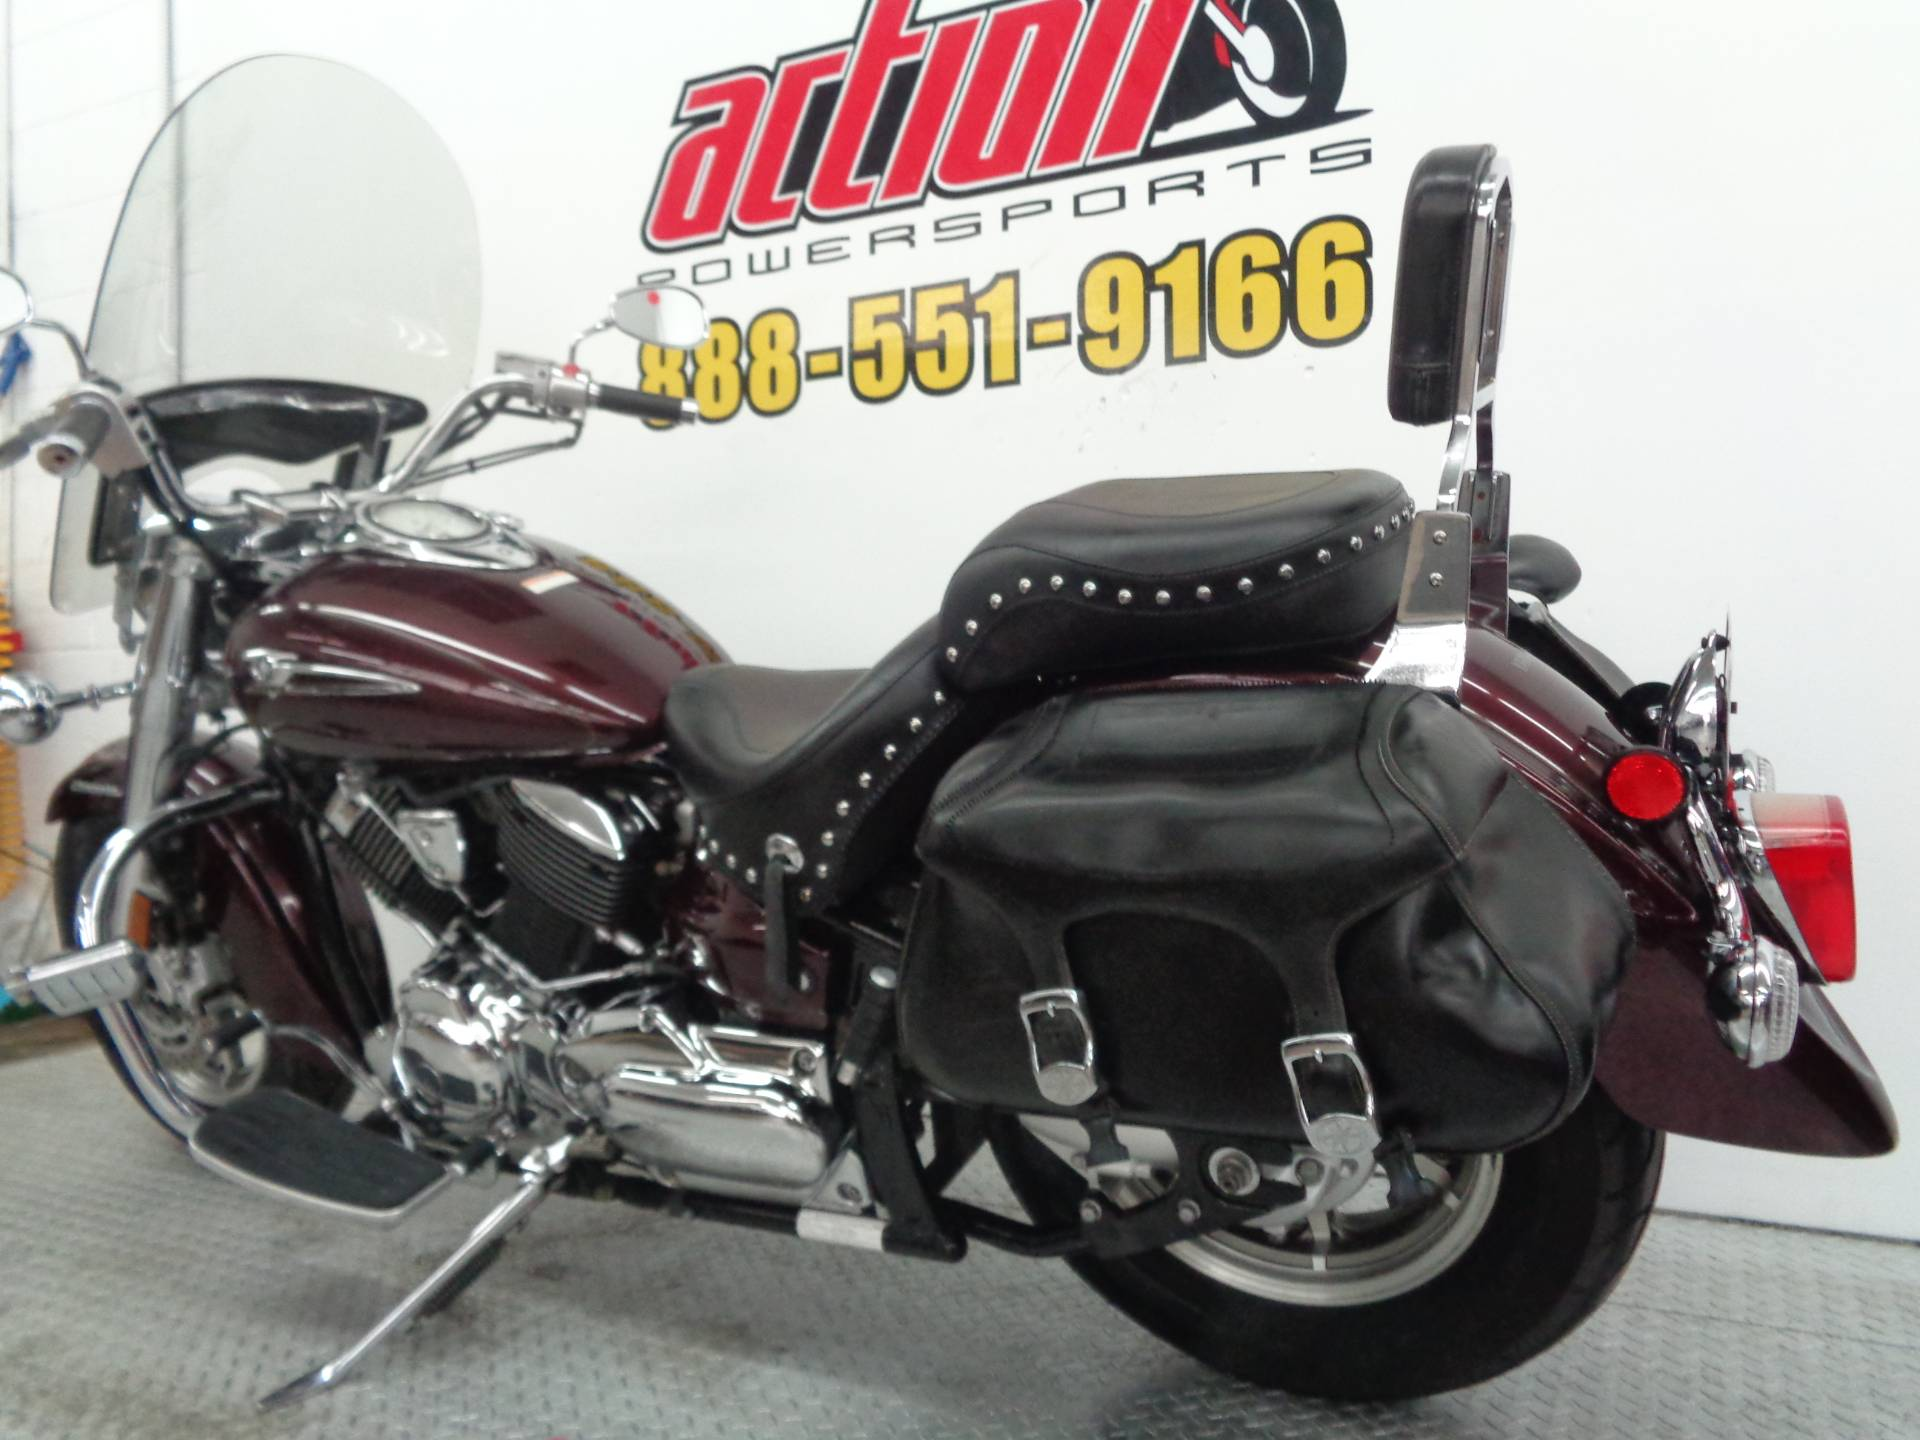 2007 Yamaha V Star® 1100 Silverado® in Tulsa, Oklahoma - Photo 4